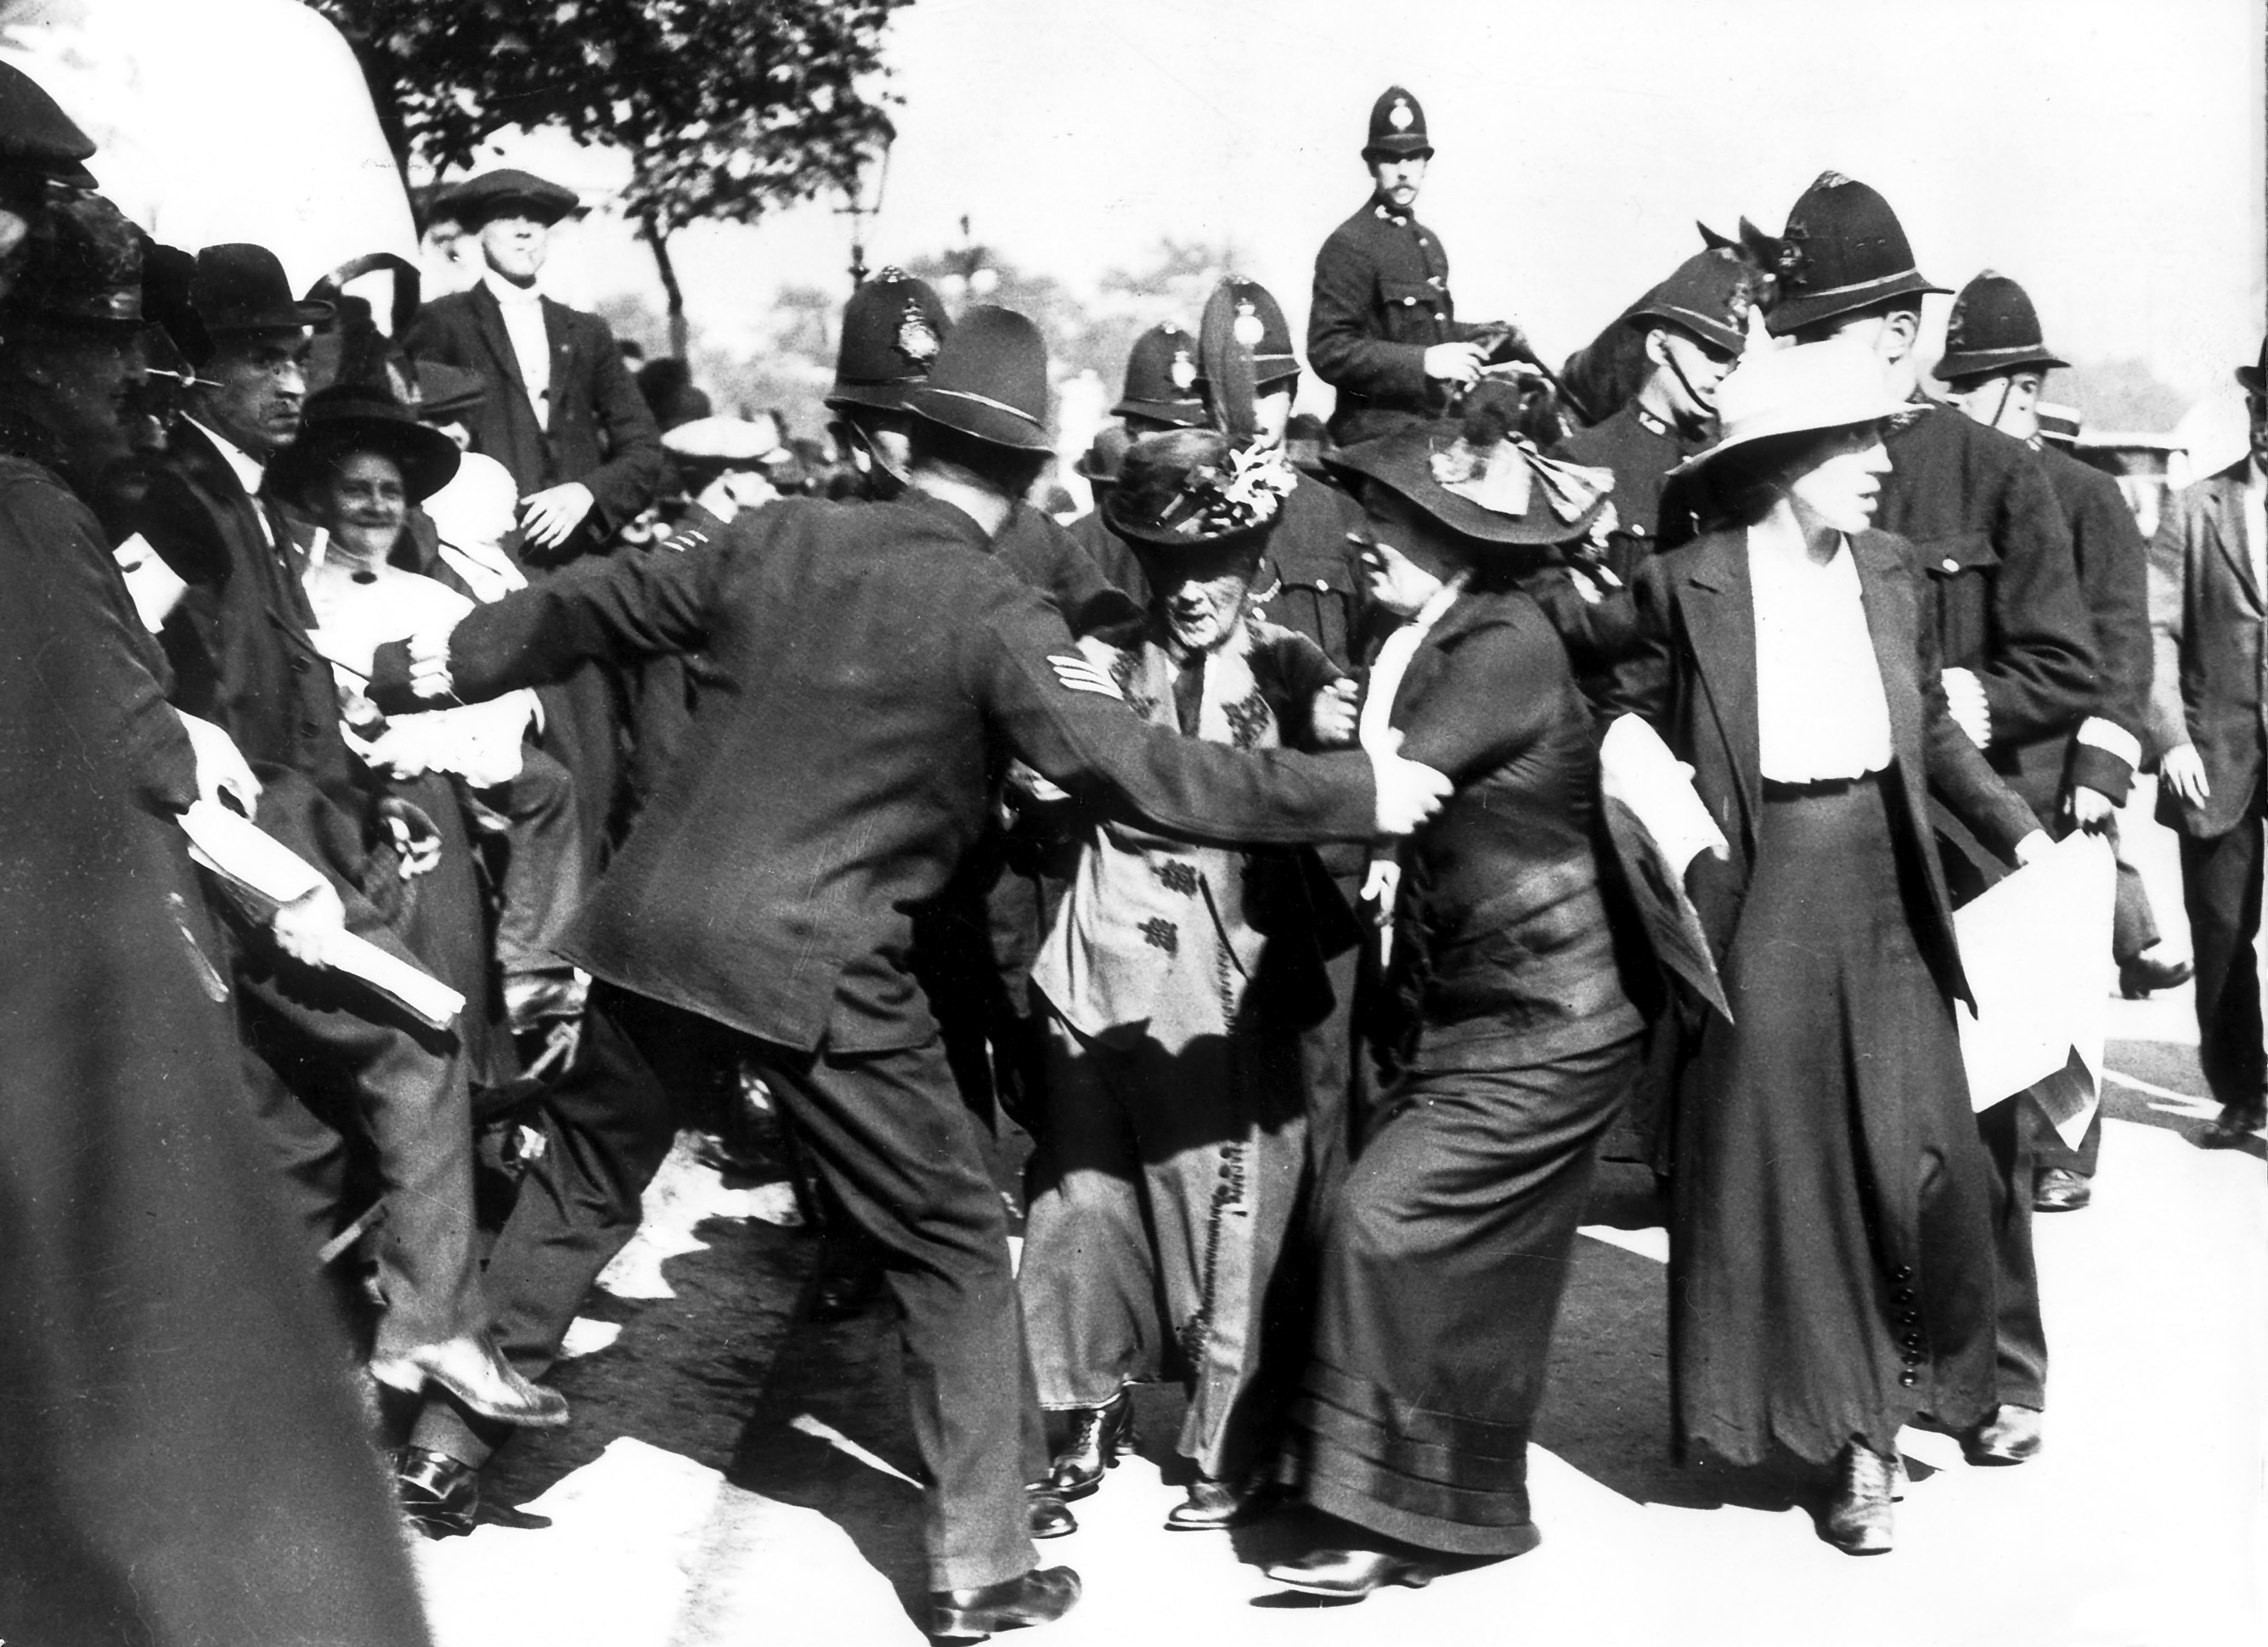 England: Suffragettes confrontation with police